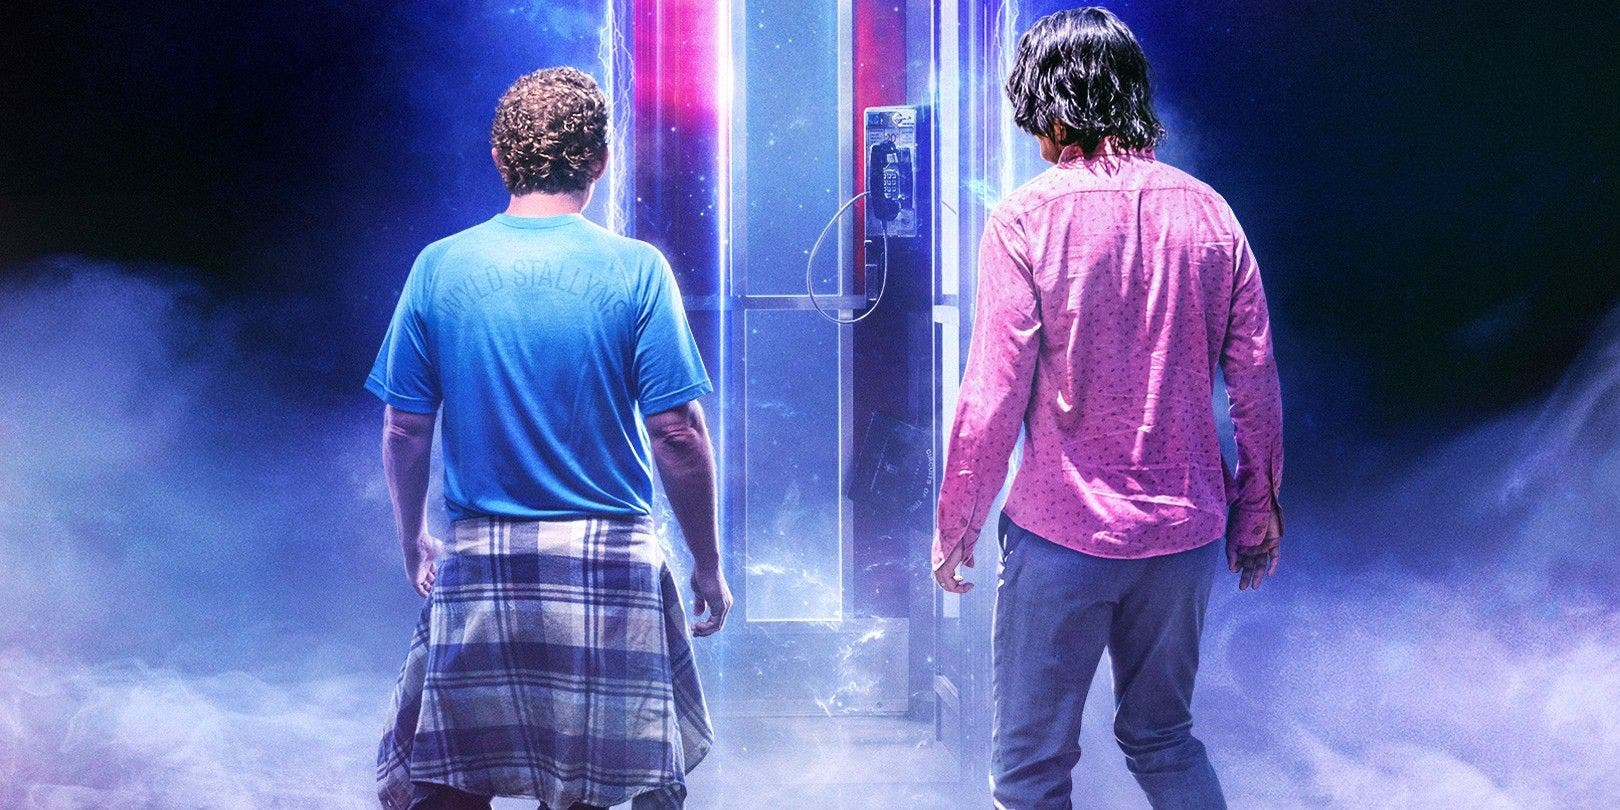 La secuela Bill & Ted Face the Music libera segundo tráiler